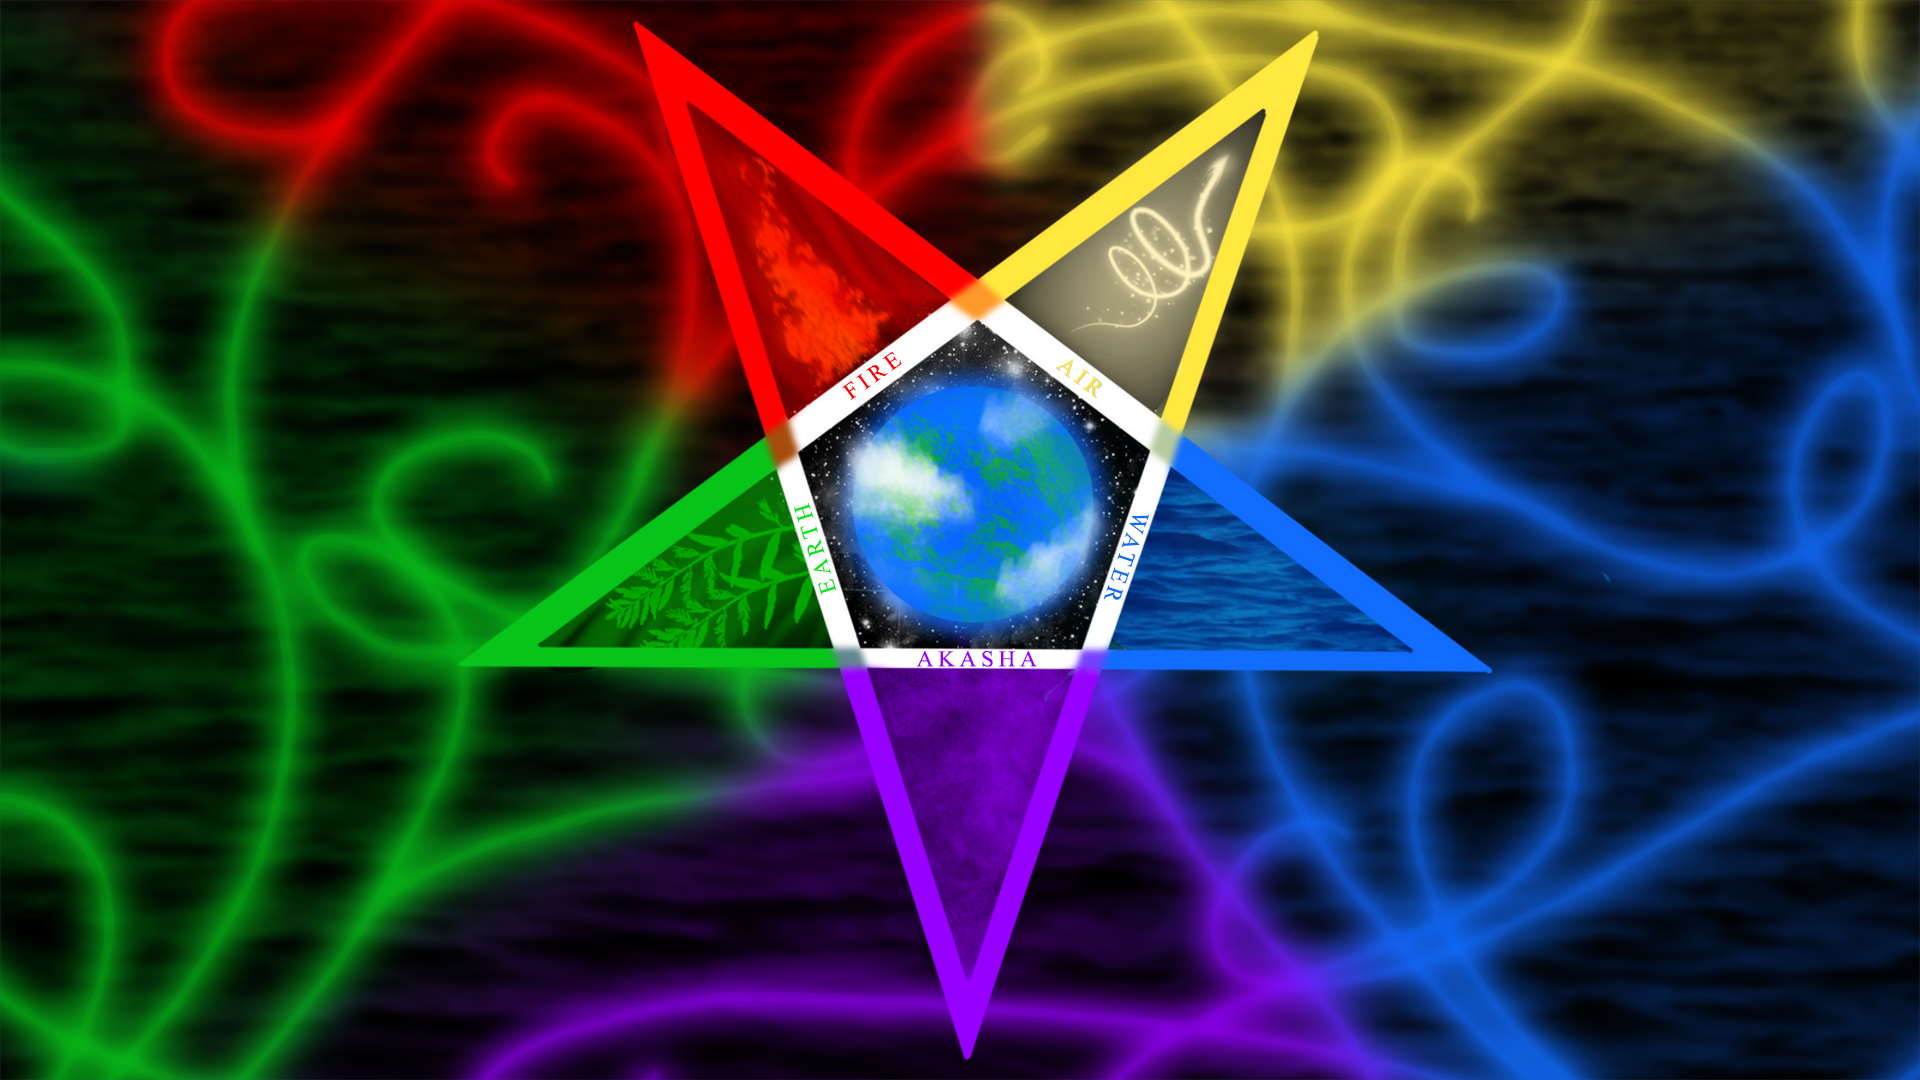 Five Elements Art : The elements by vovina de micaloz on deviantart